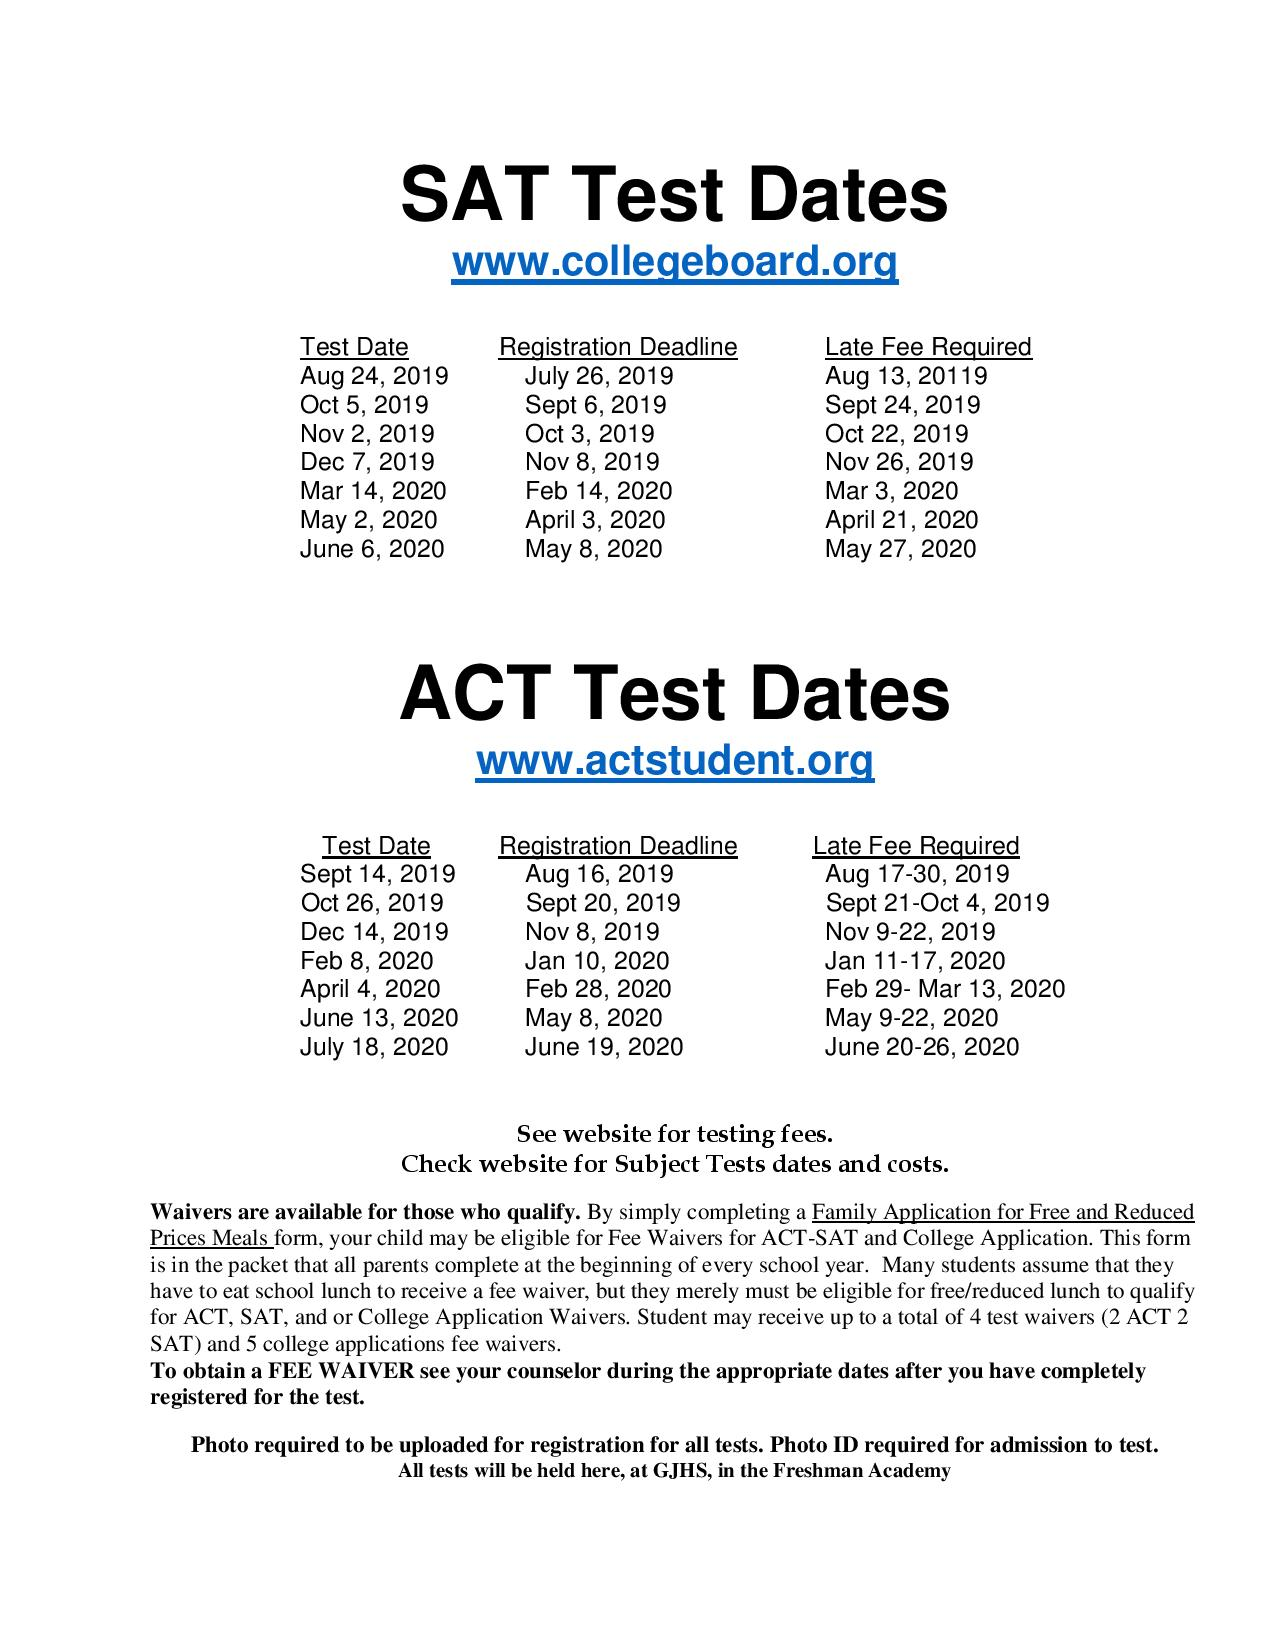 SAT/ACT Test Dates 1